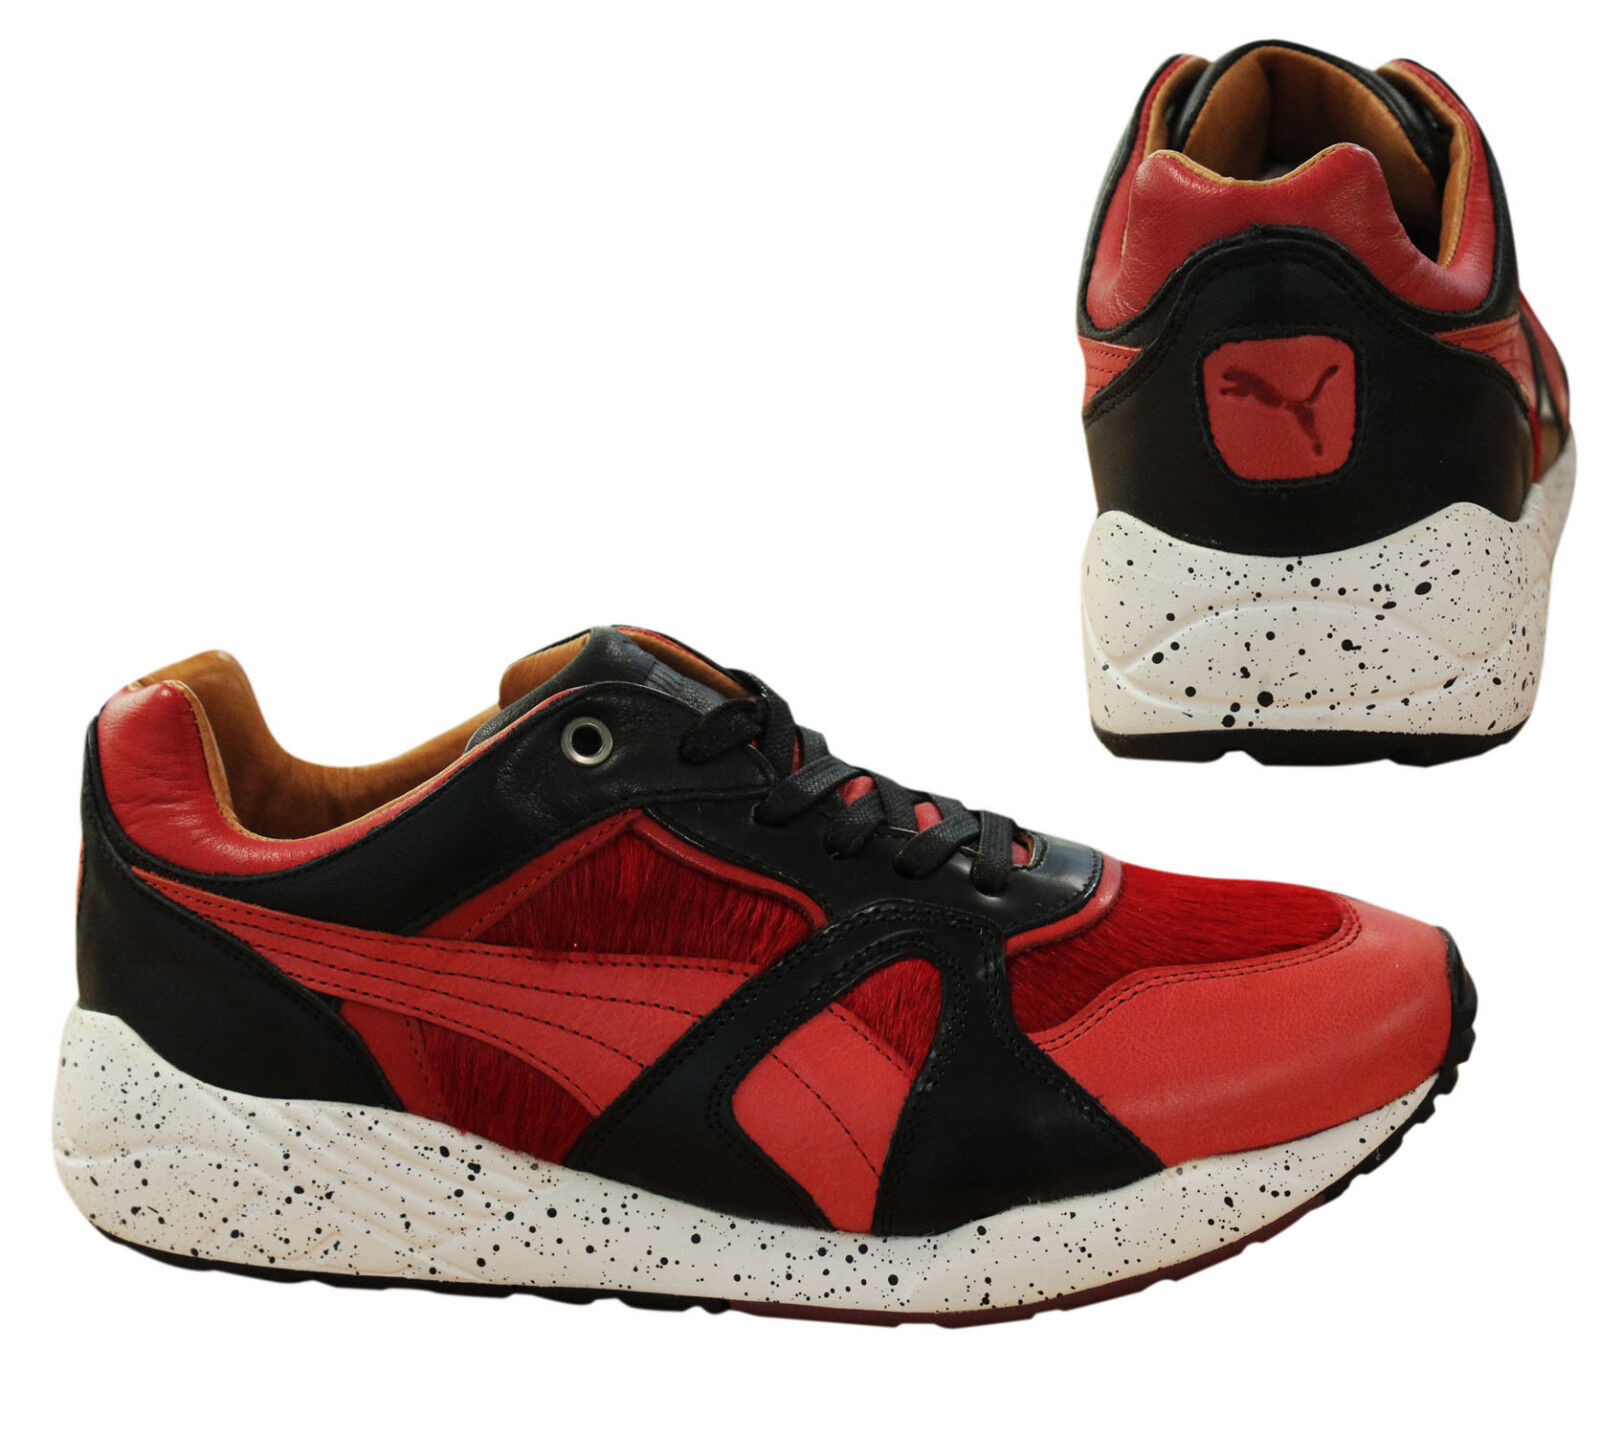 Puma Trinomic XS500 X Miitaly Mens Trainers Red Made In  357262 04 M11